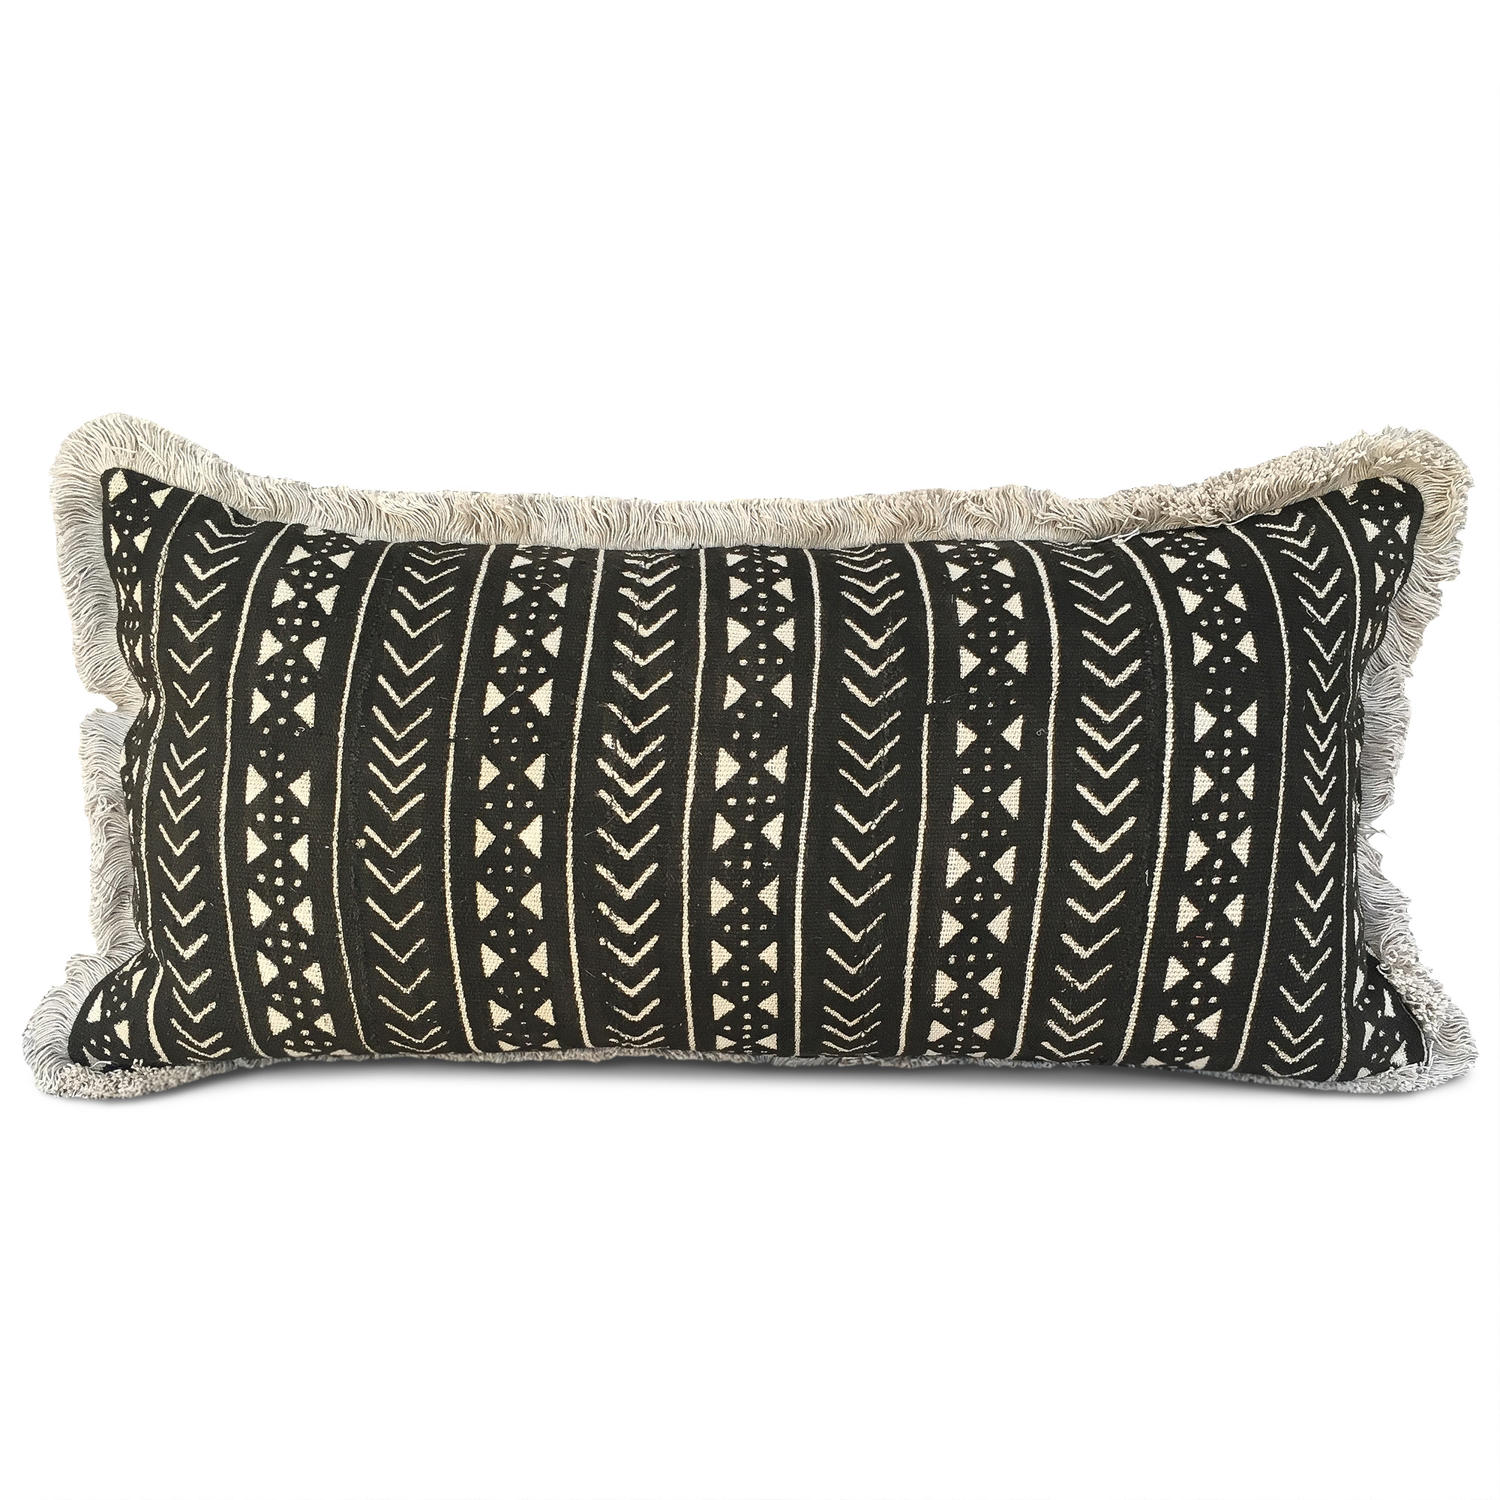 Large Mud Cloth Cushion with Fringe